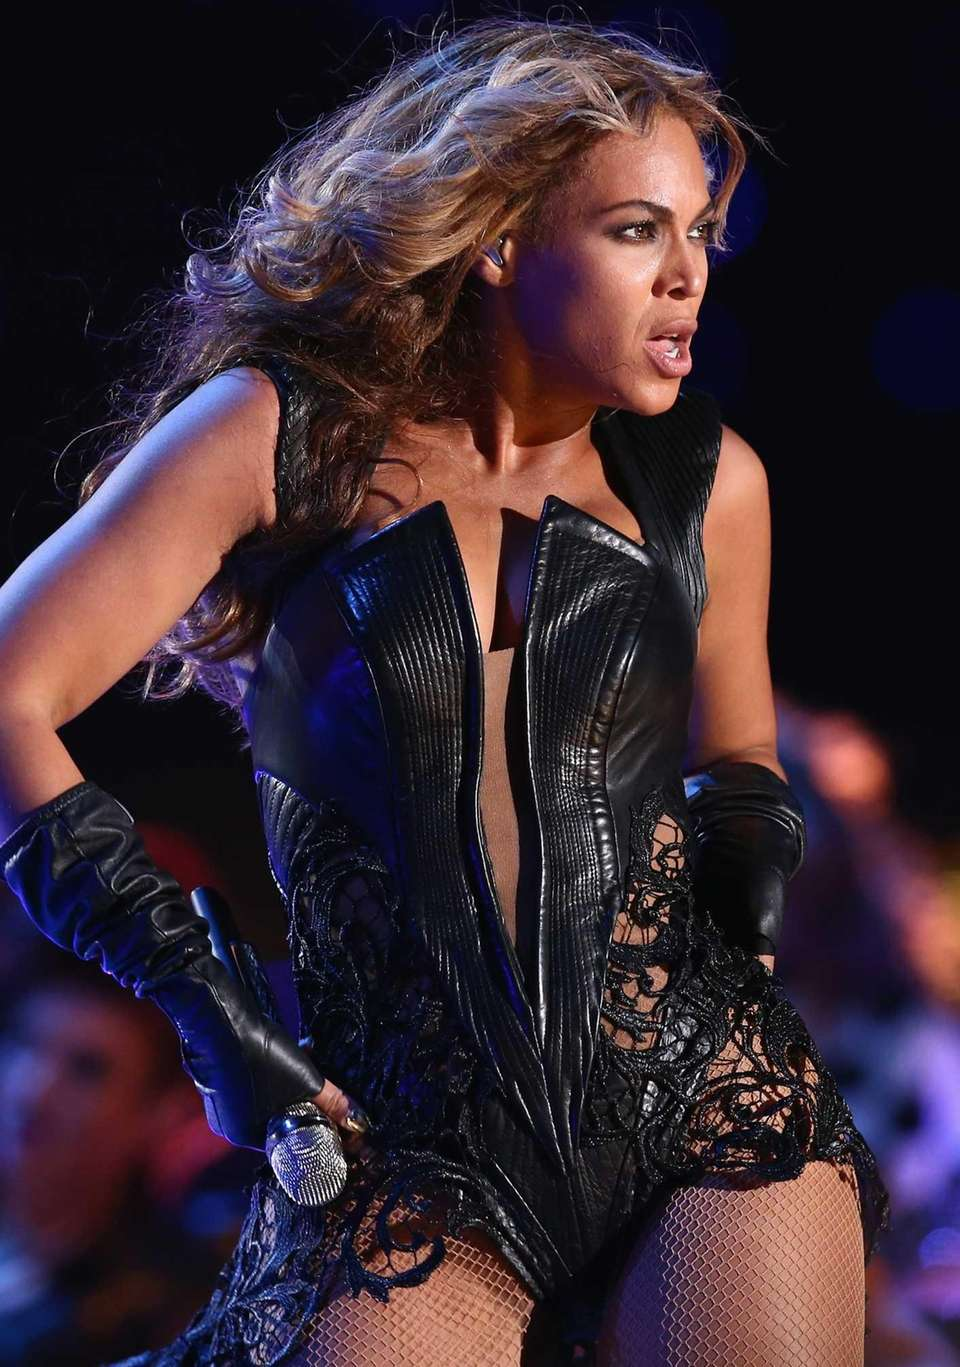 Beyoncé performs during the Pepsi Super Bowl XLVII